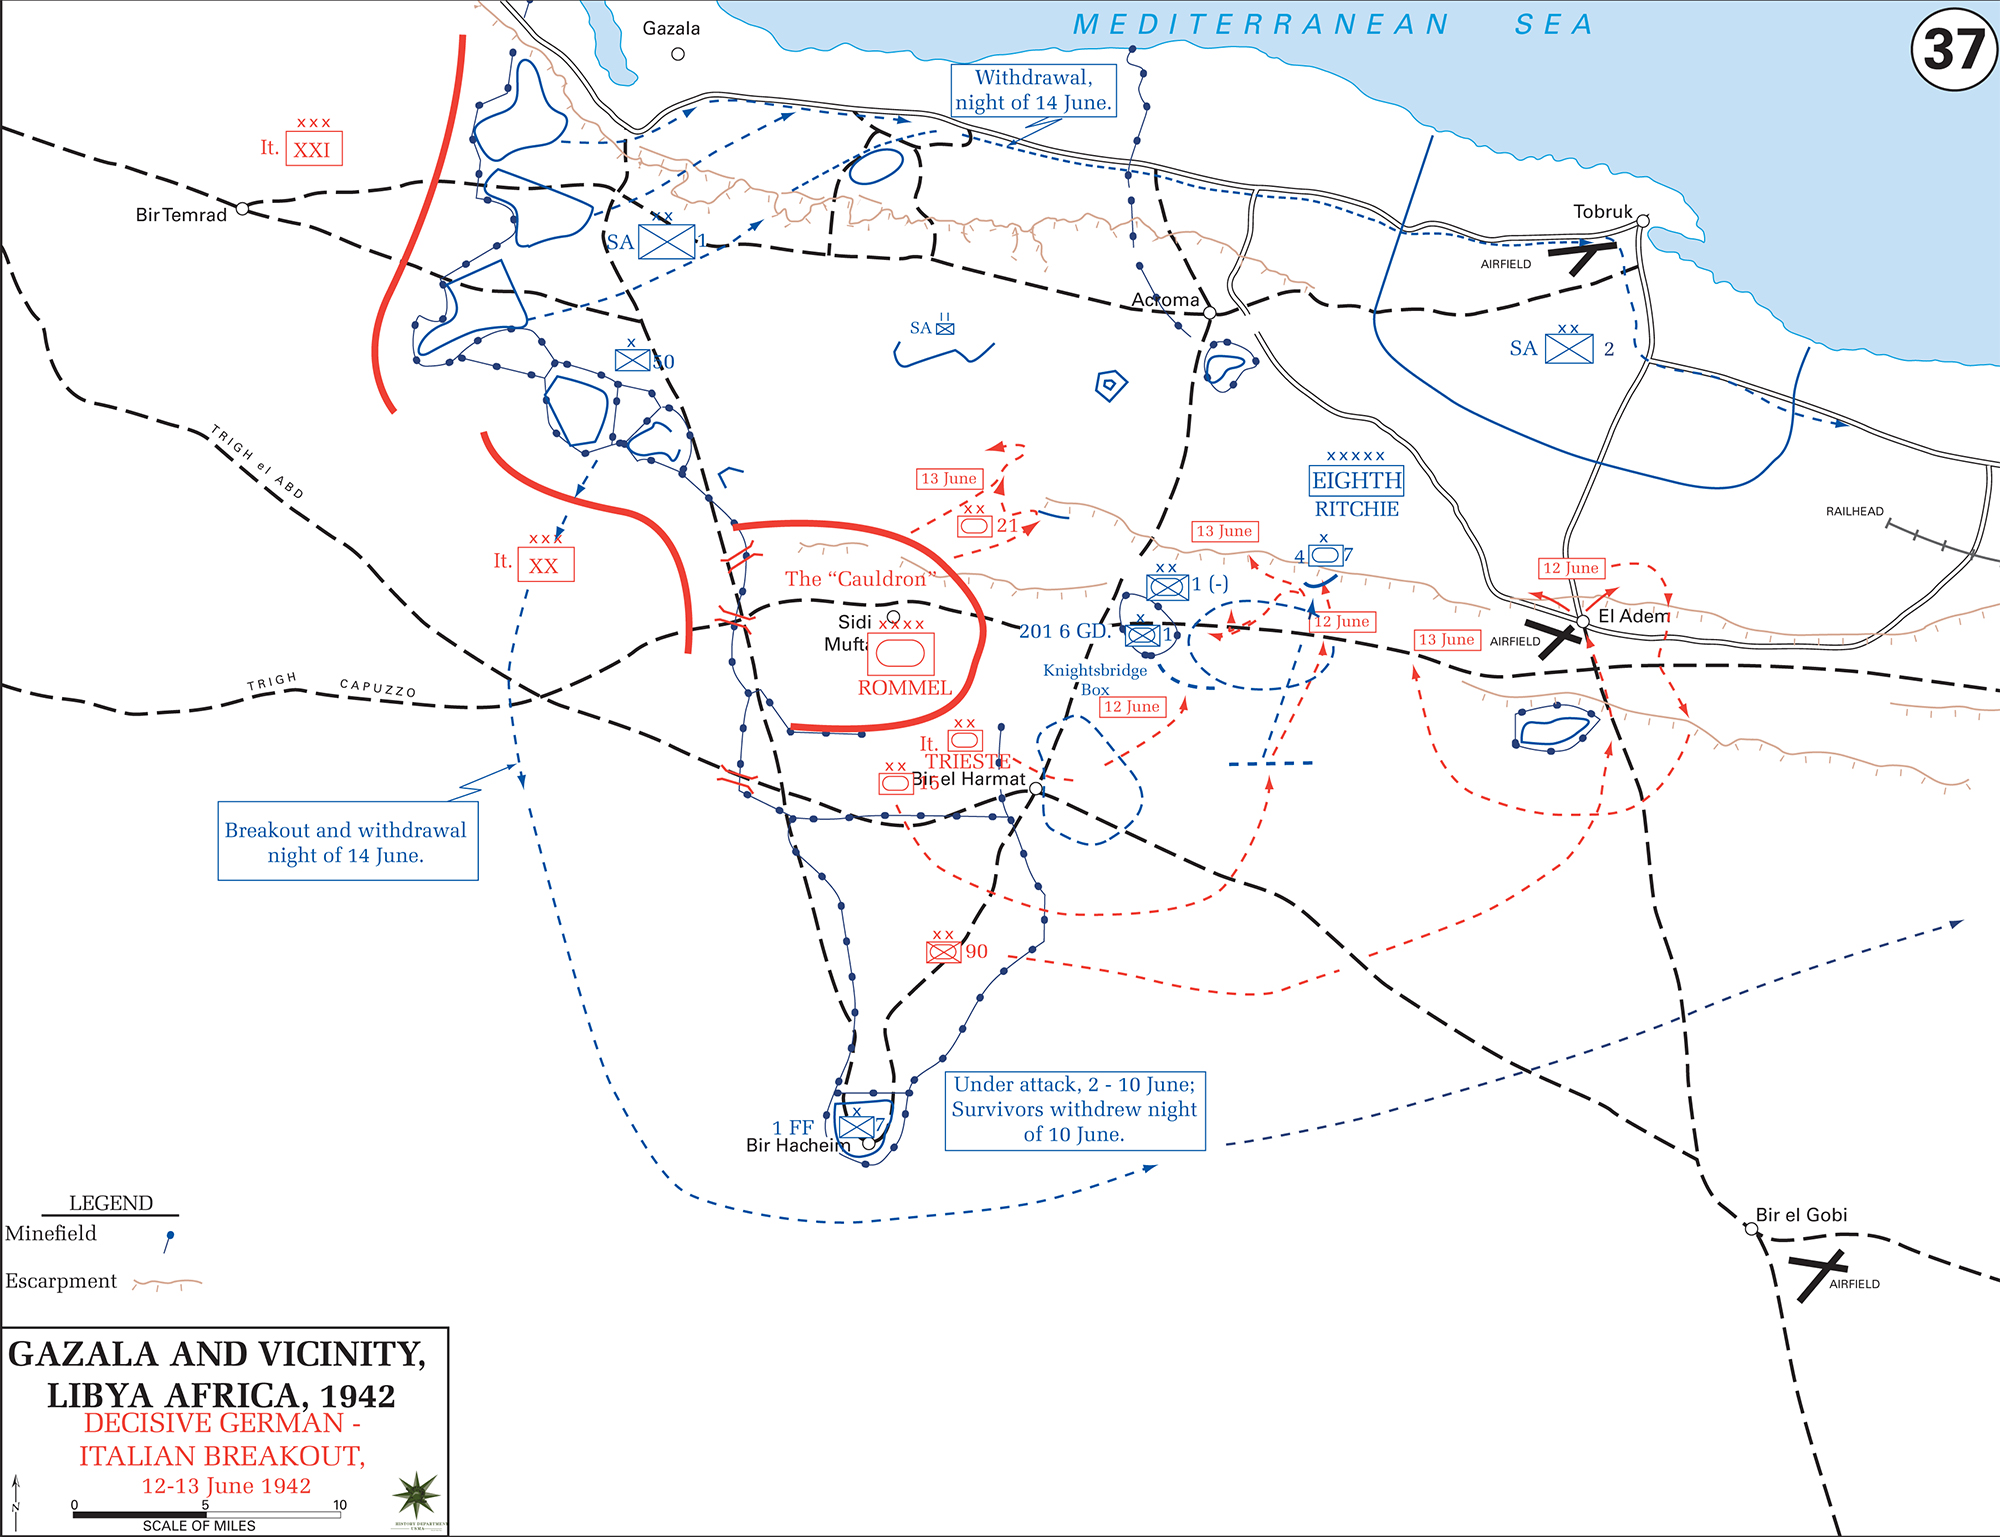 Map of WWII Gazala and Vicinity, Libya, North Africa 1942 - Decisive German-Italian Breakout June 12-13, 1942